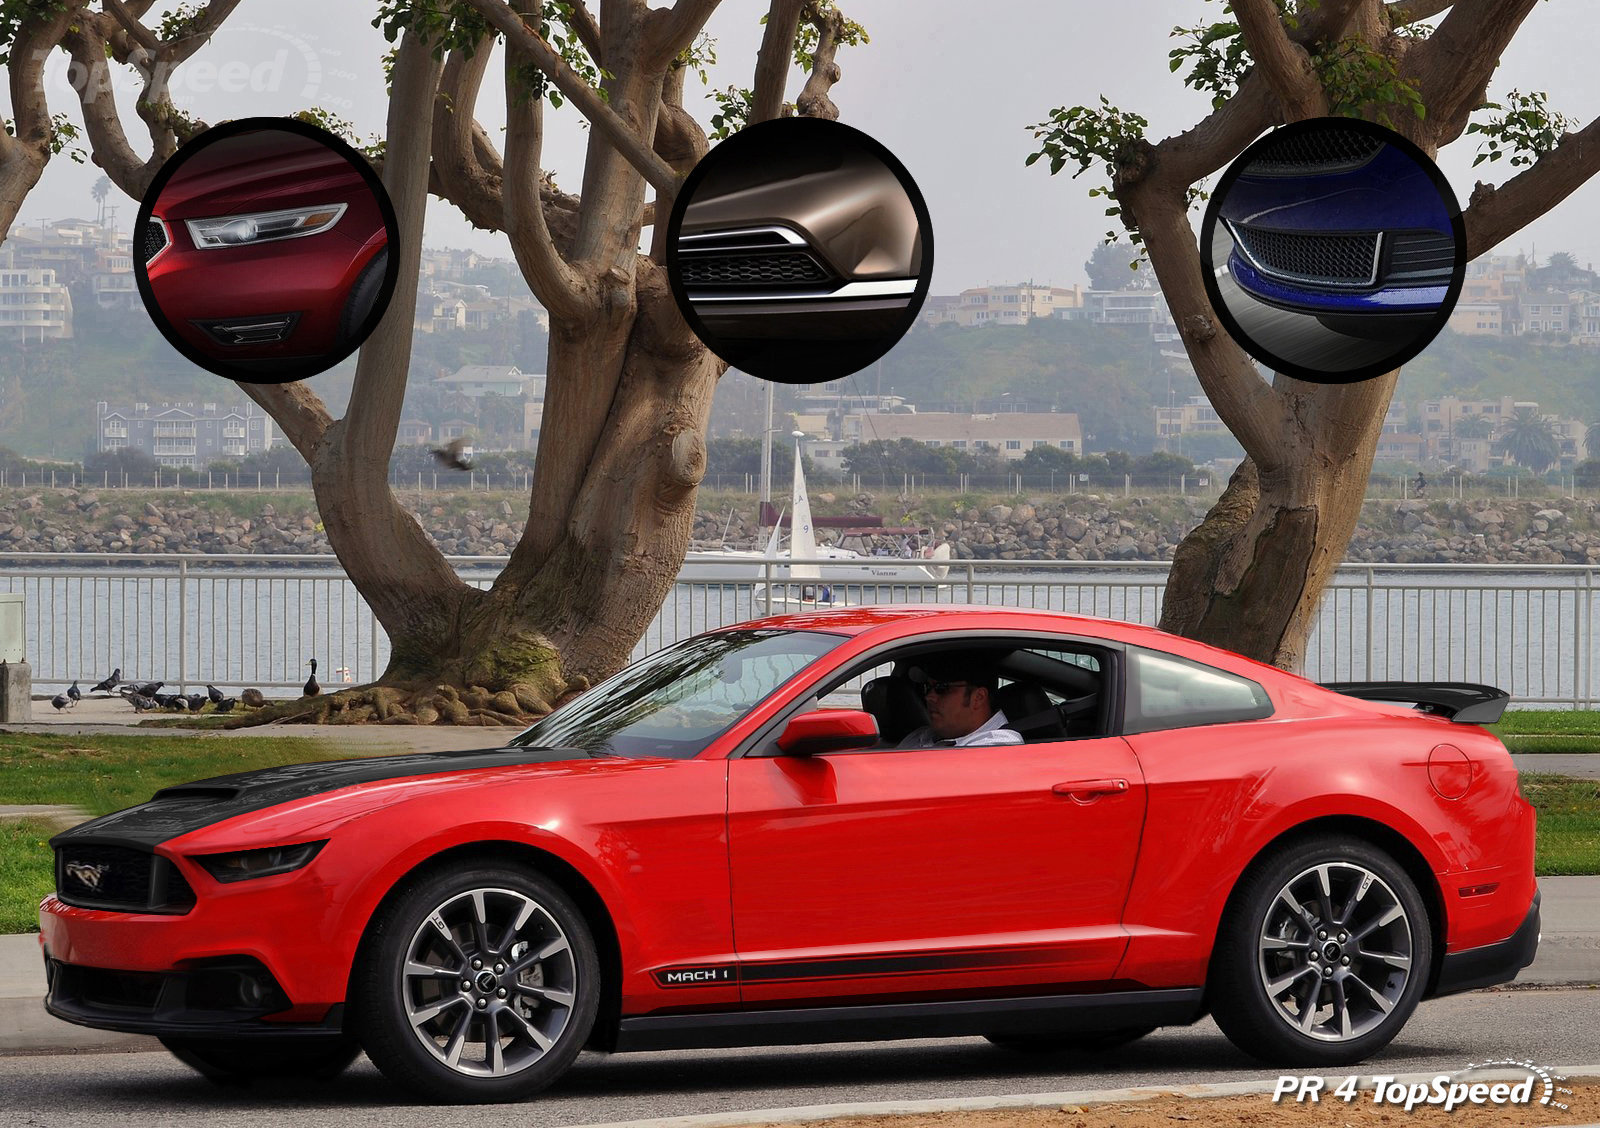 2015 ford mustang concept | cars | Pinterest | The cool, Cars and ...